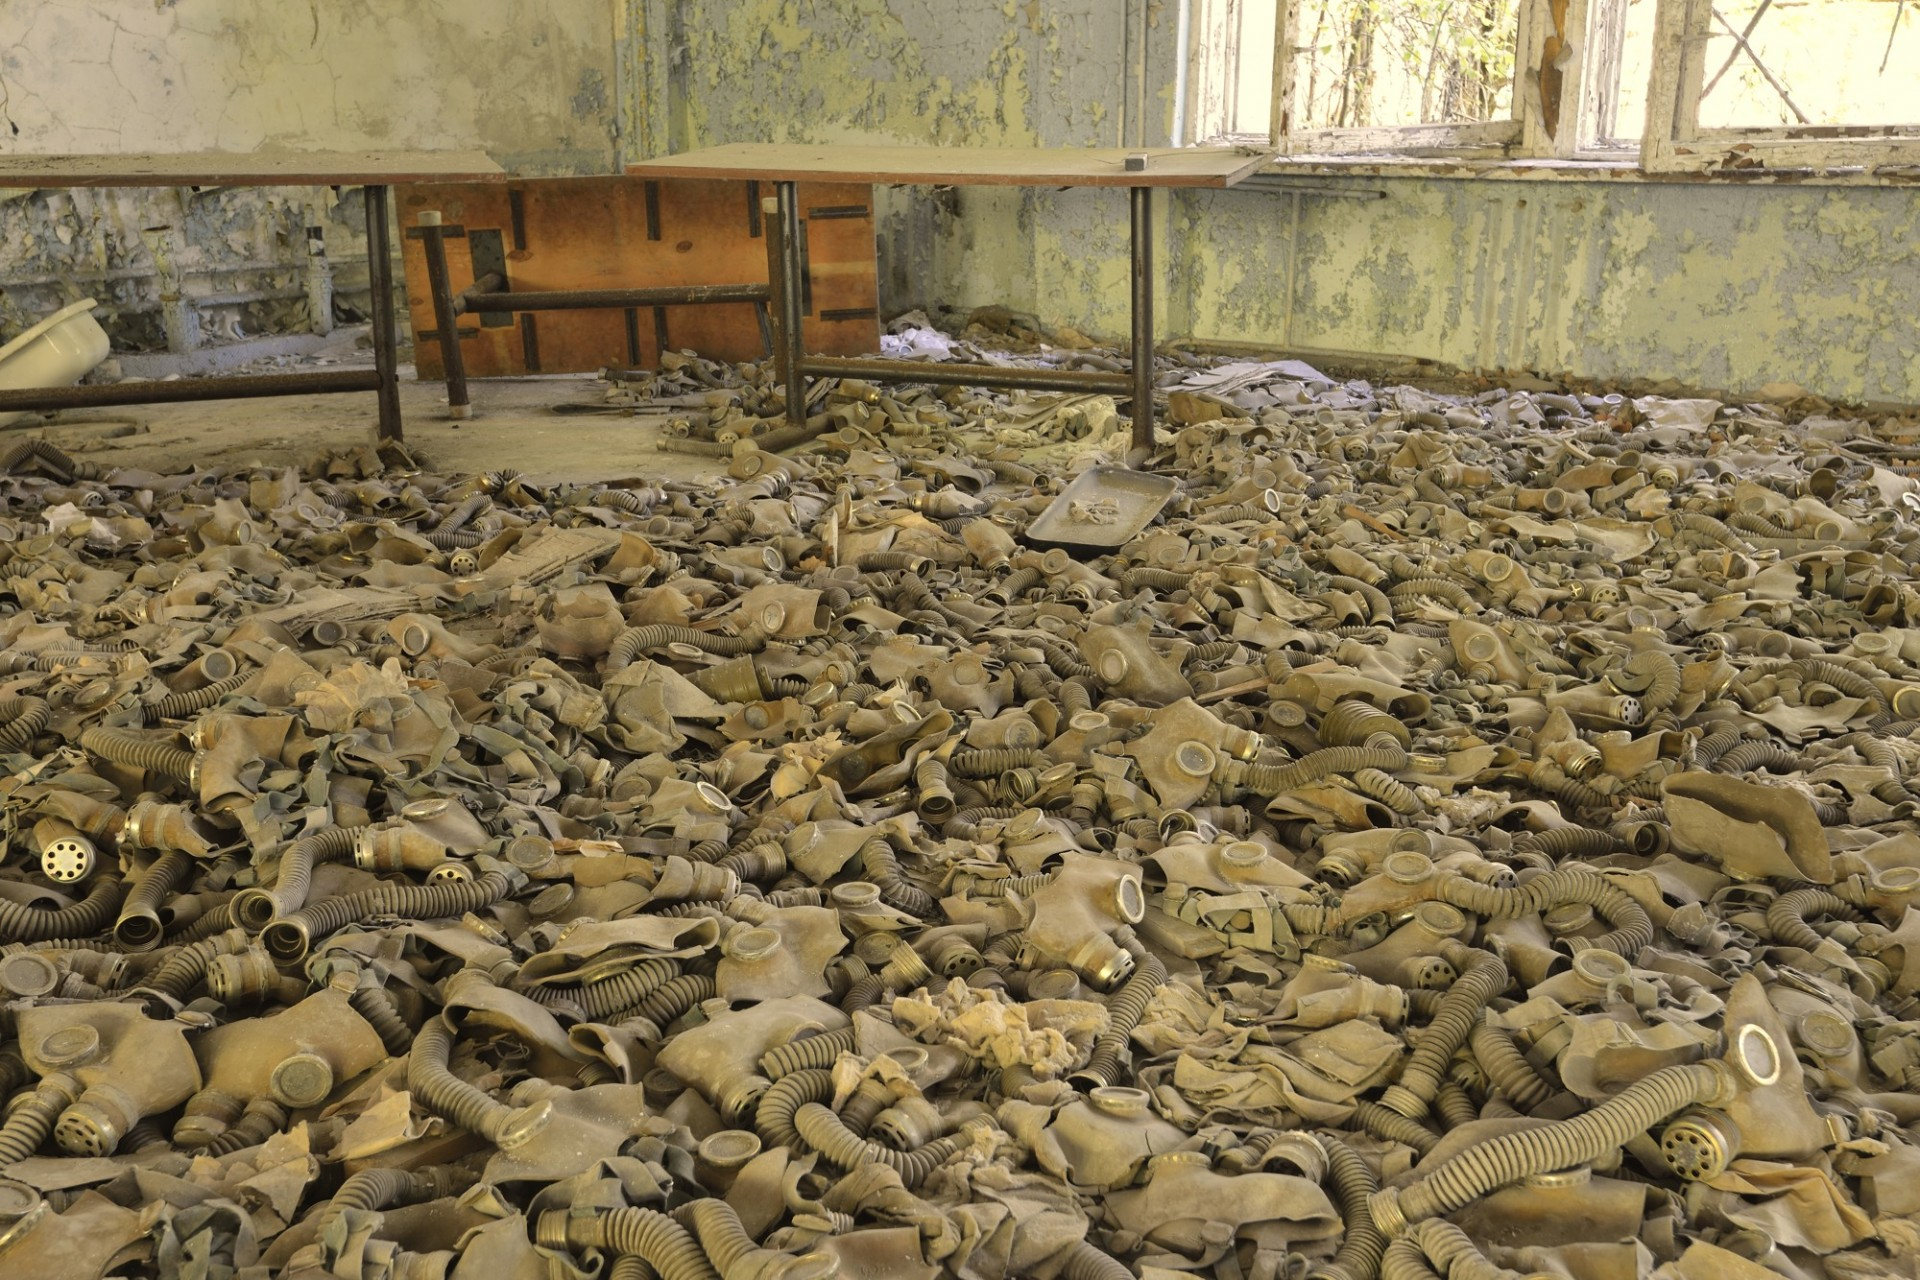 The Schools of Pripyat